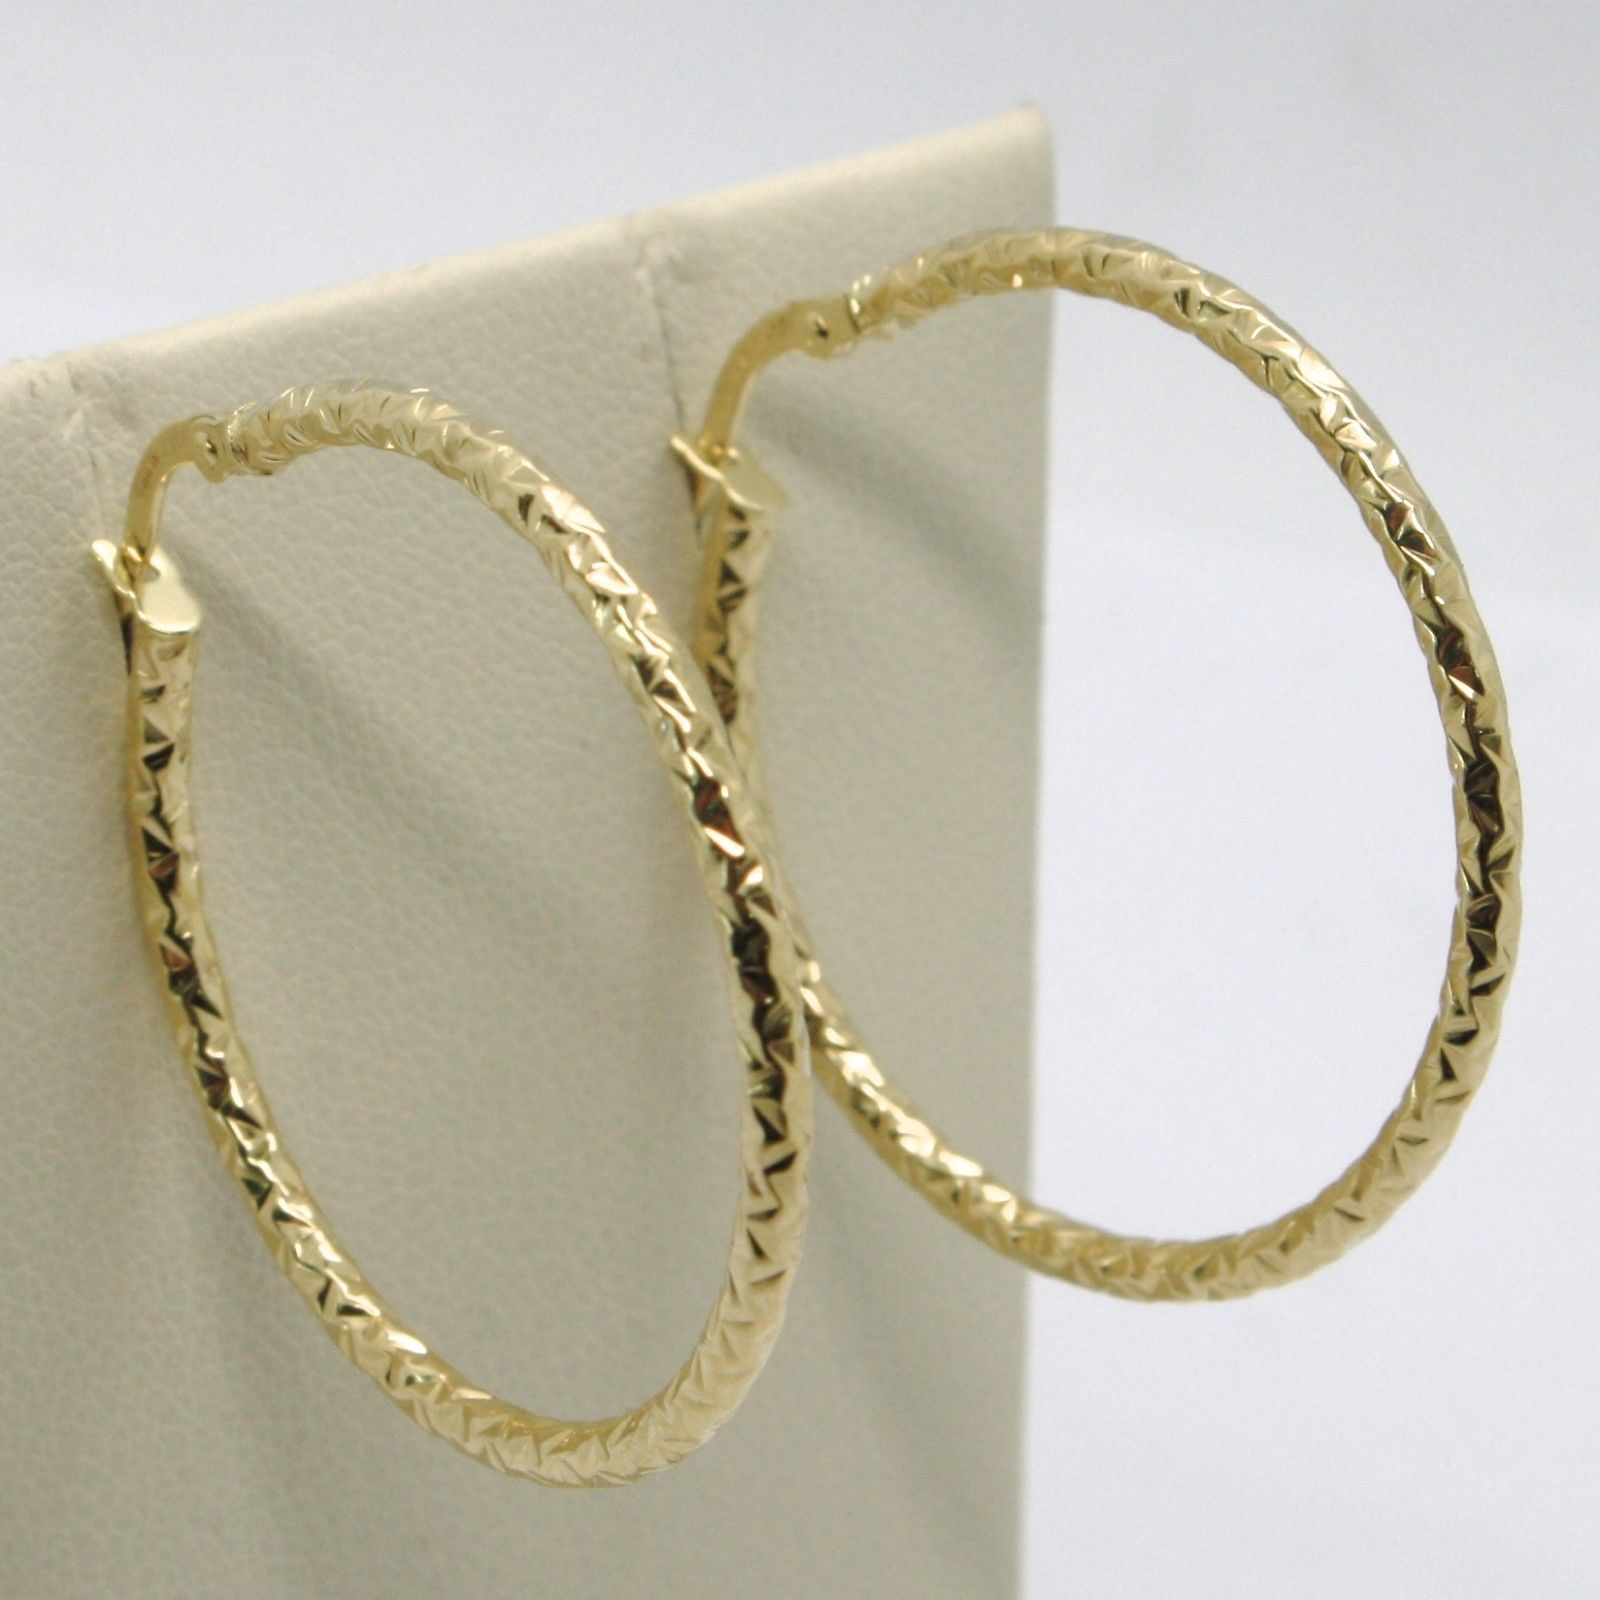 18K YELLOW GOLD CIRCLE HOOPS TUBE HAMMERED EARRINGS 33 MM x 2 MM, MADE IN ITALY